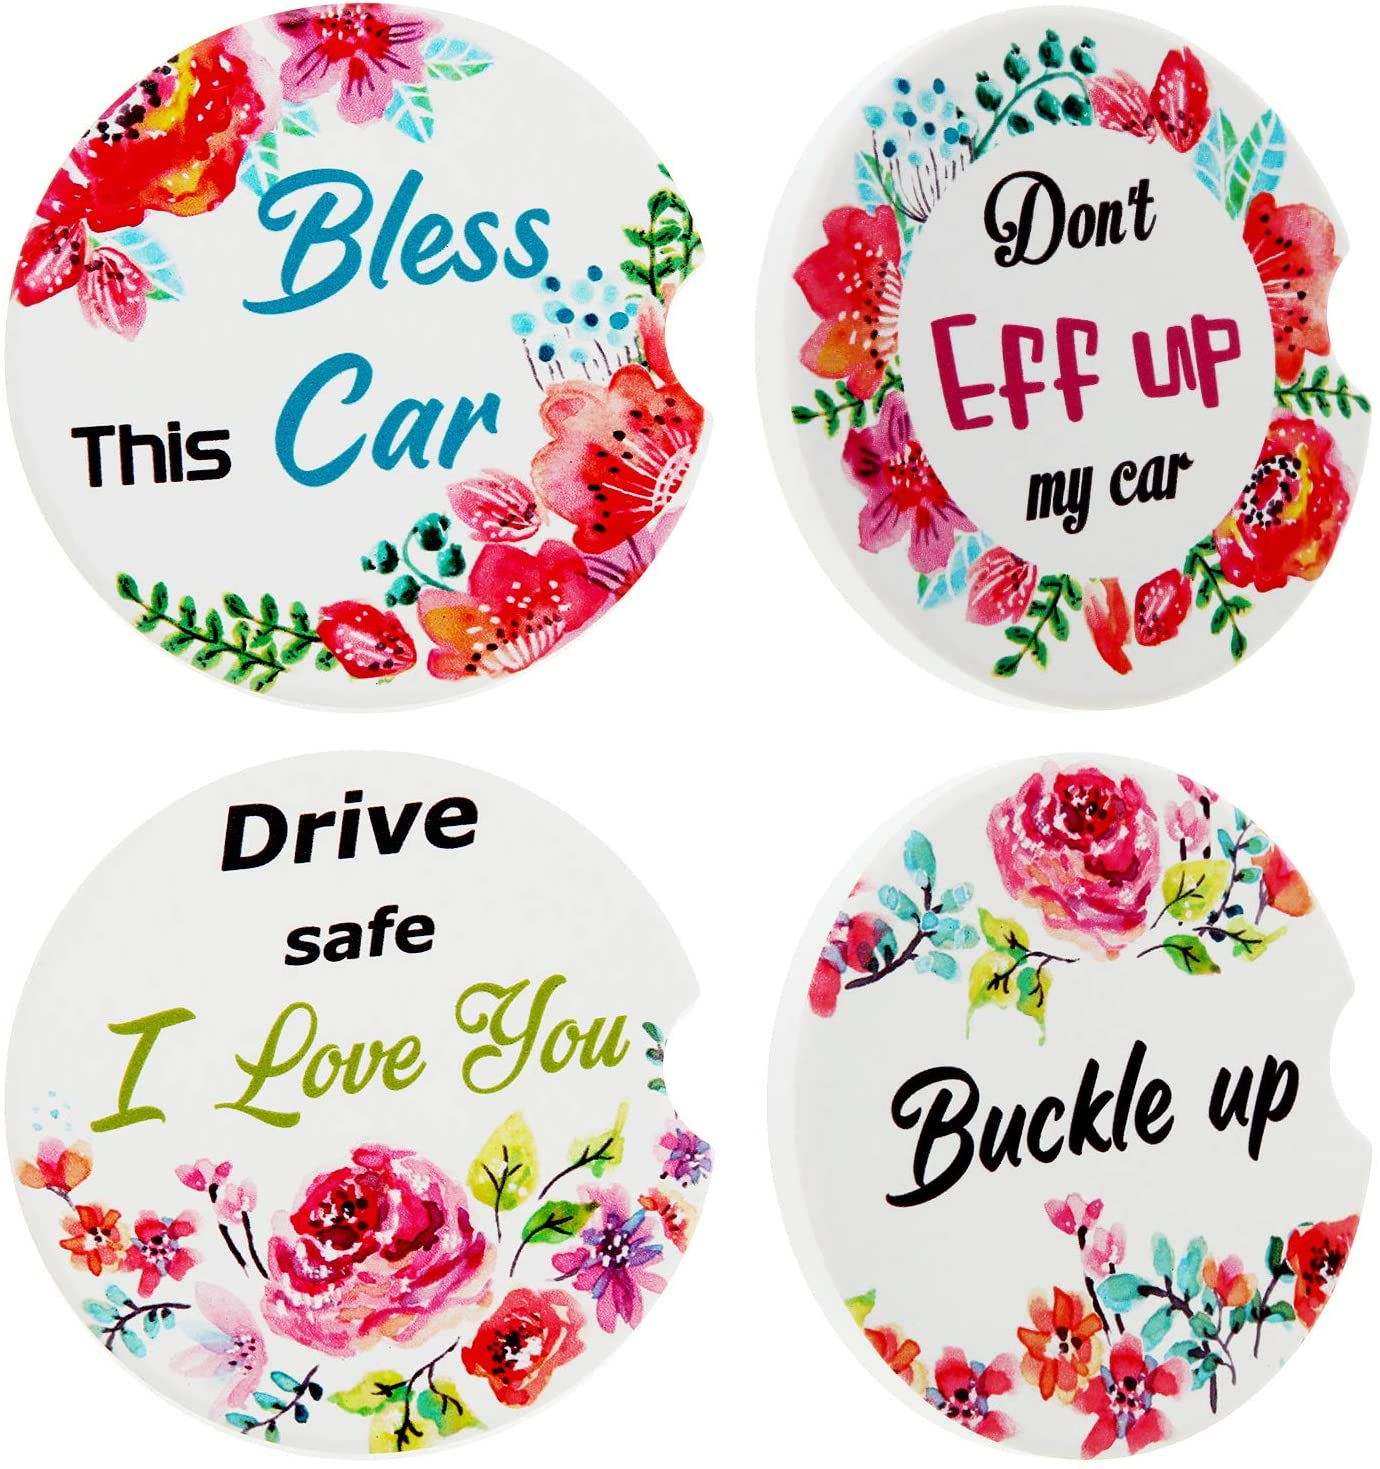 4 Pieces Car Cup Holder Coasters Floral Style Car Coasters Absorbent Ceramic Cup Holders Funny Cup Coasters for Keeping Car Cup Holders Dry and Clean Home Supplies, 2.56 Inch